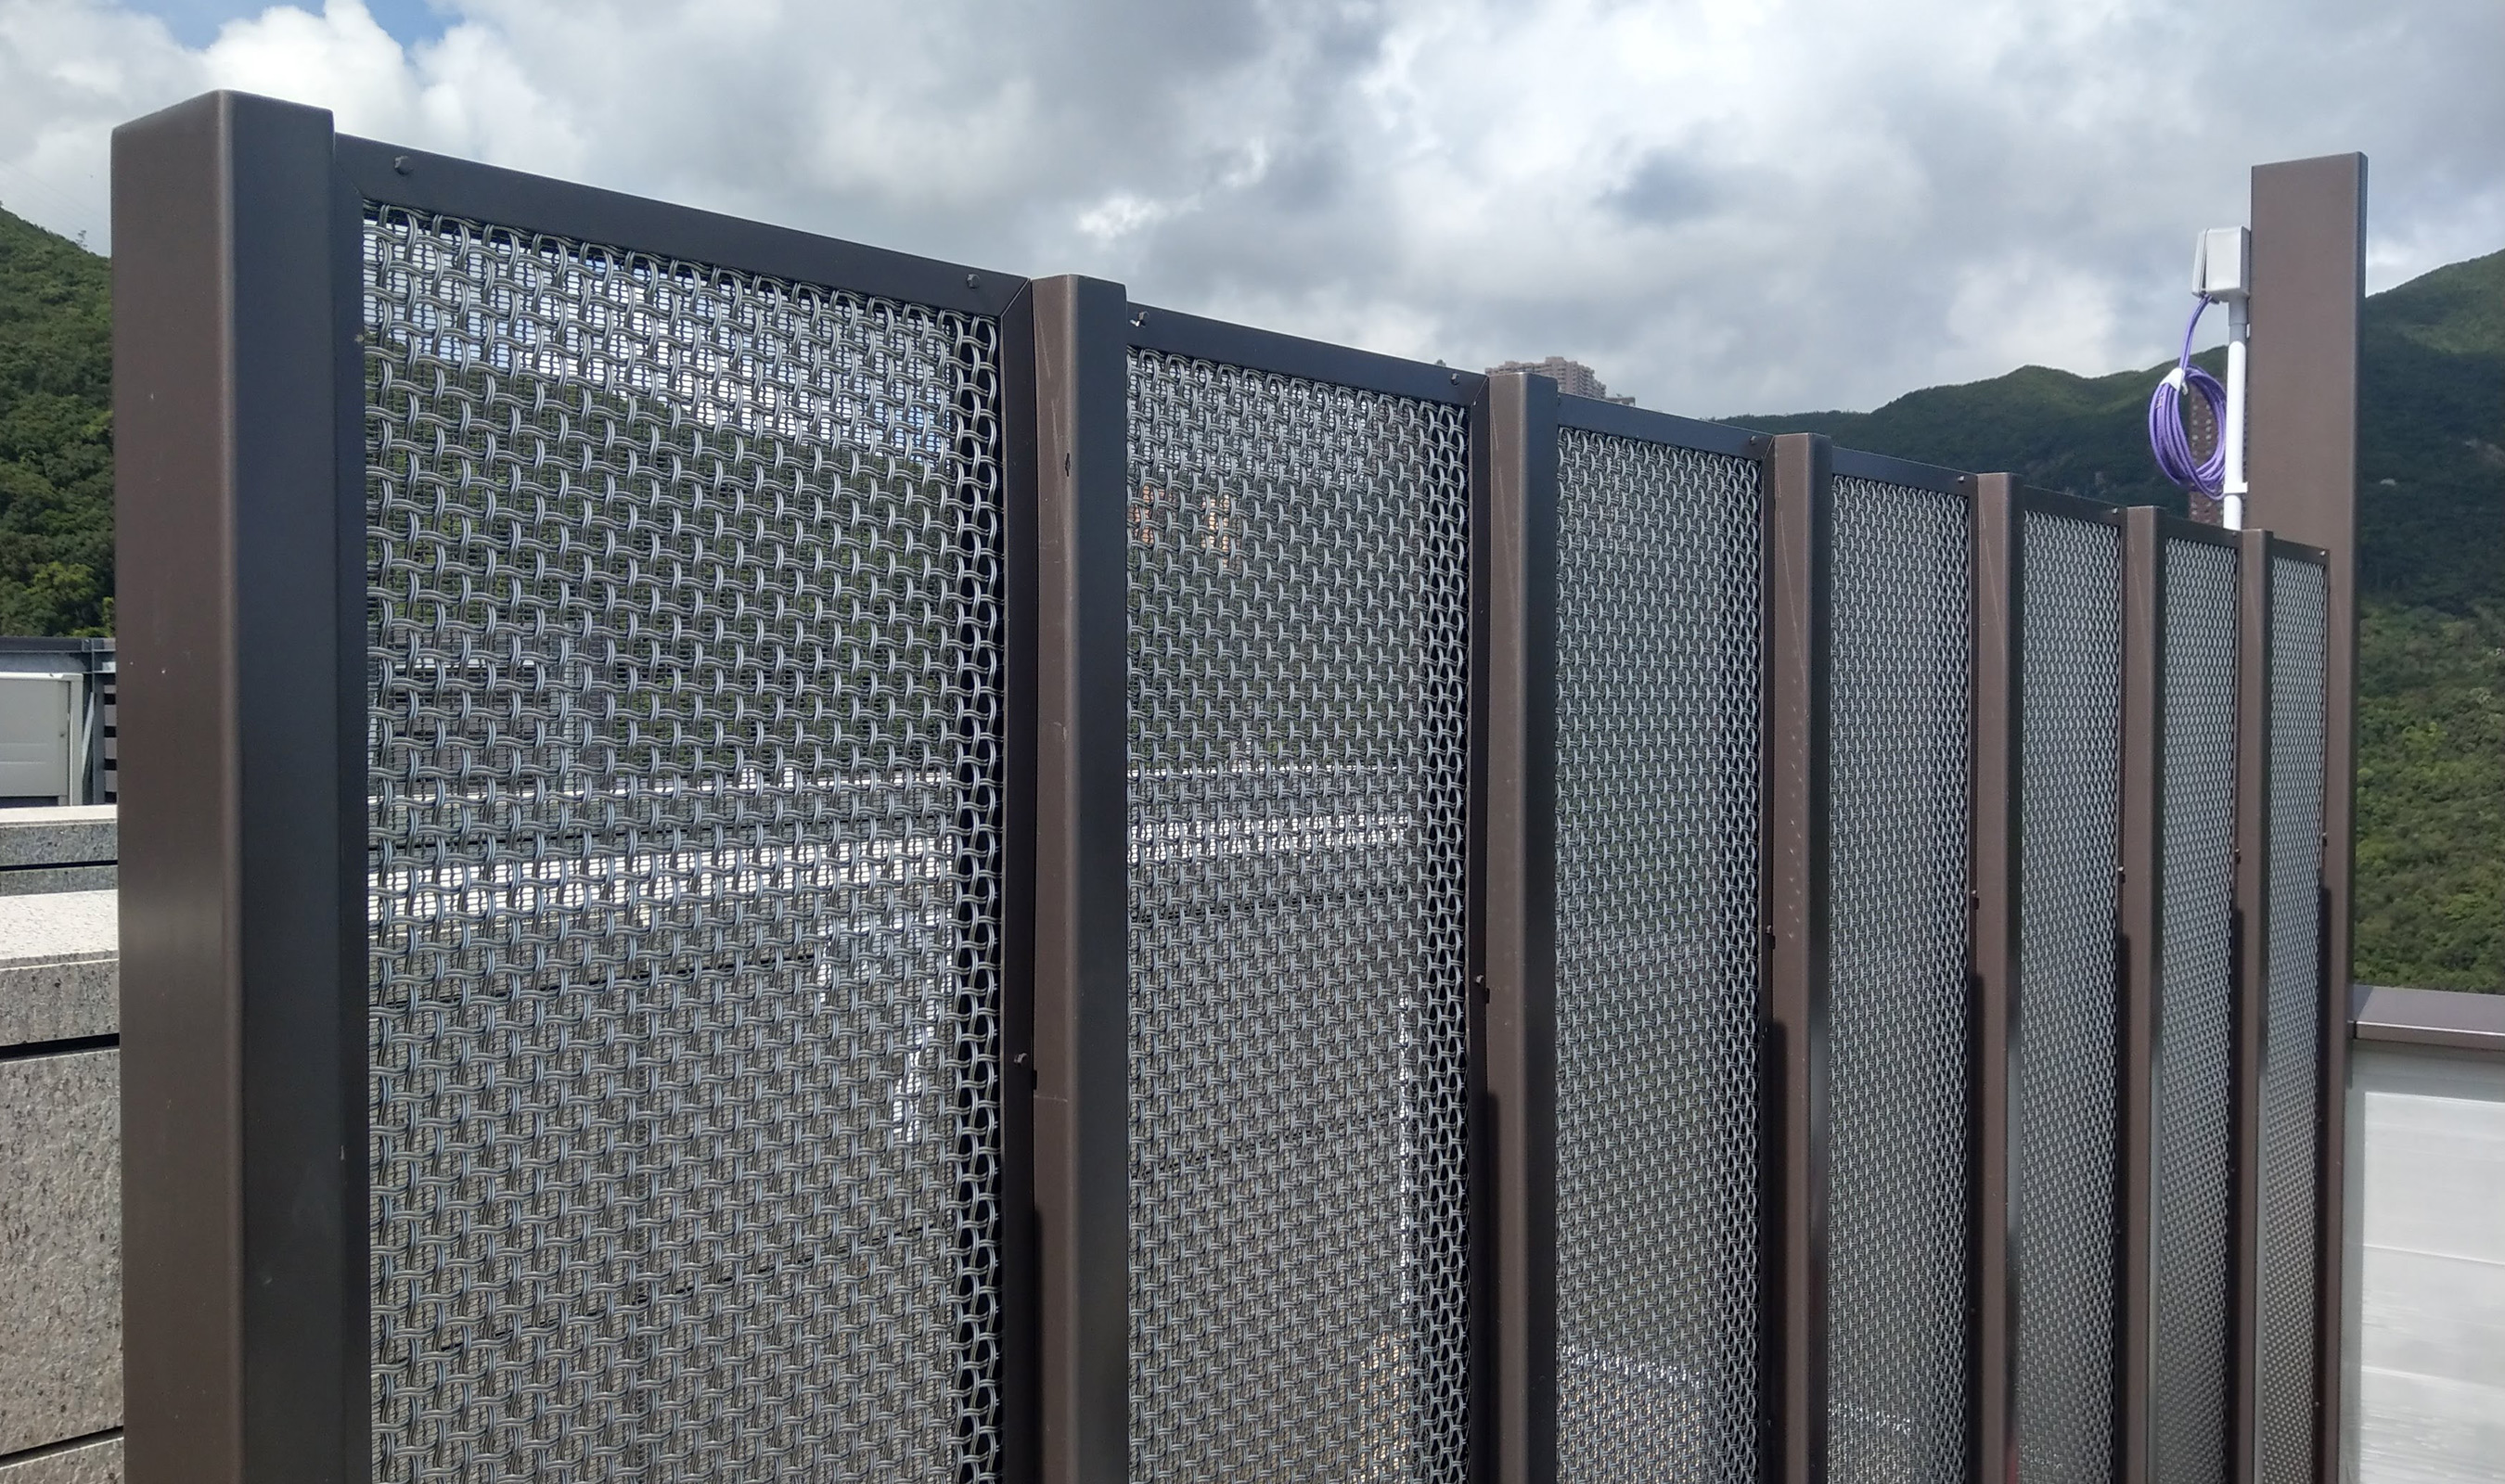 Woven wire mesh panels hide industrial equipment, giving the space a cozier atmosphere.